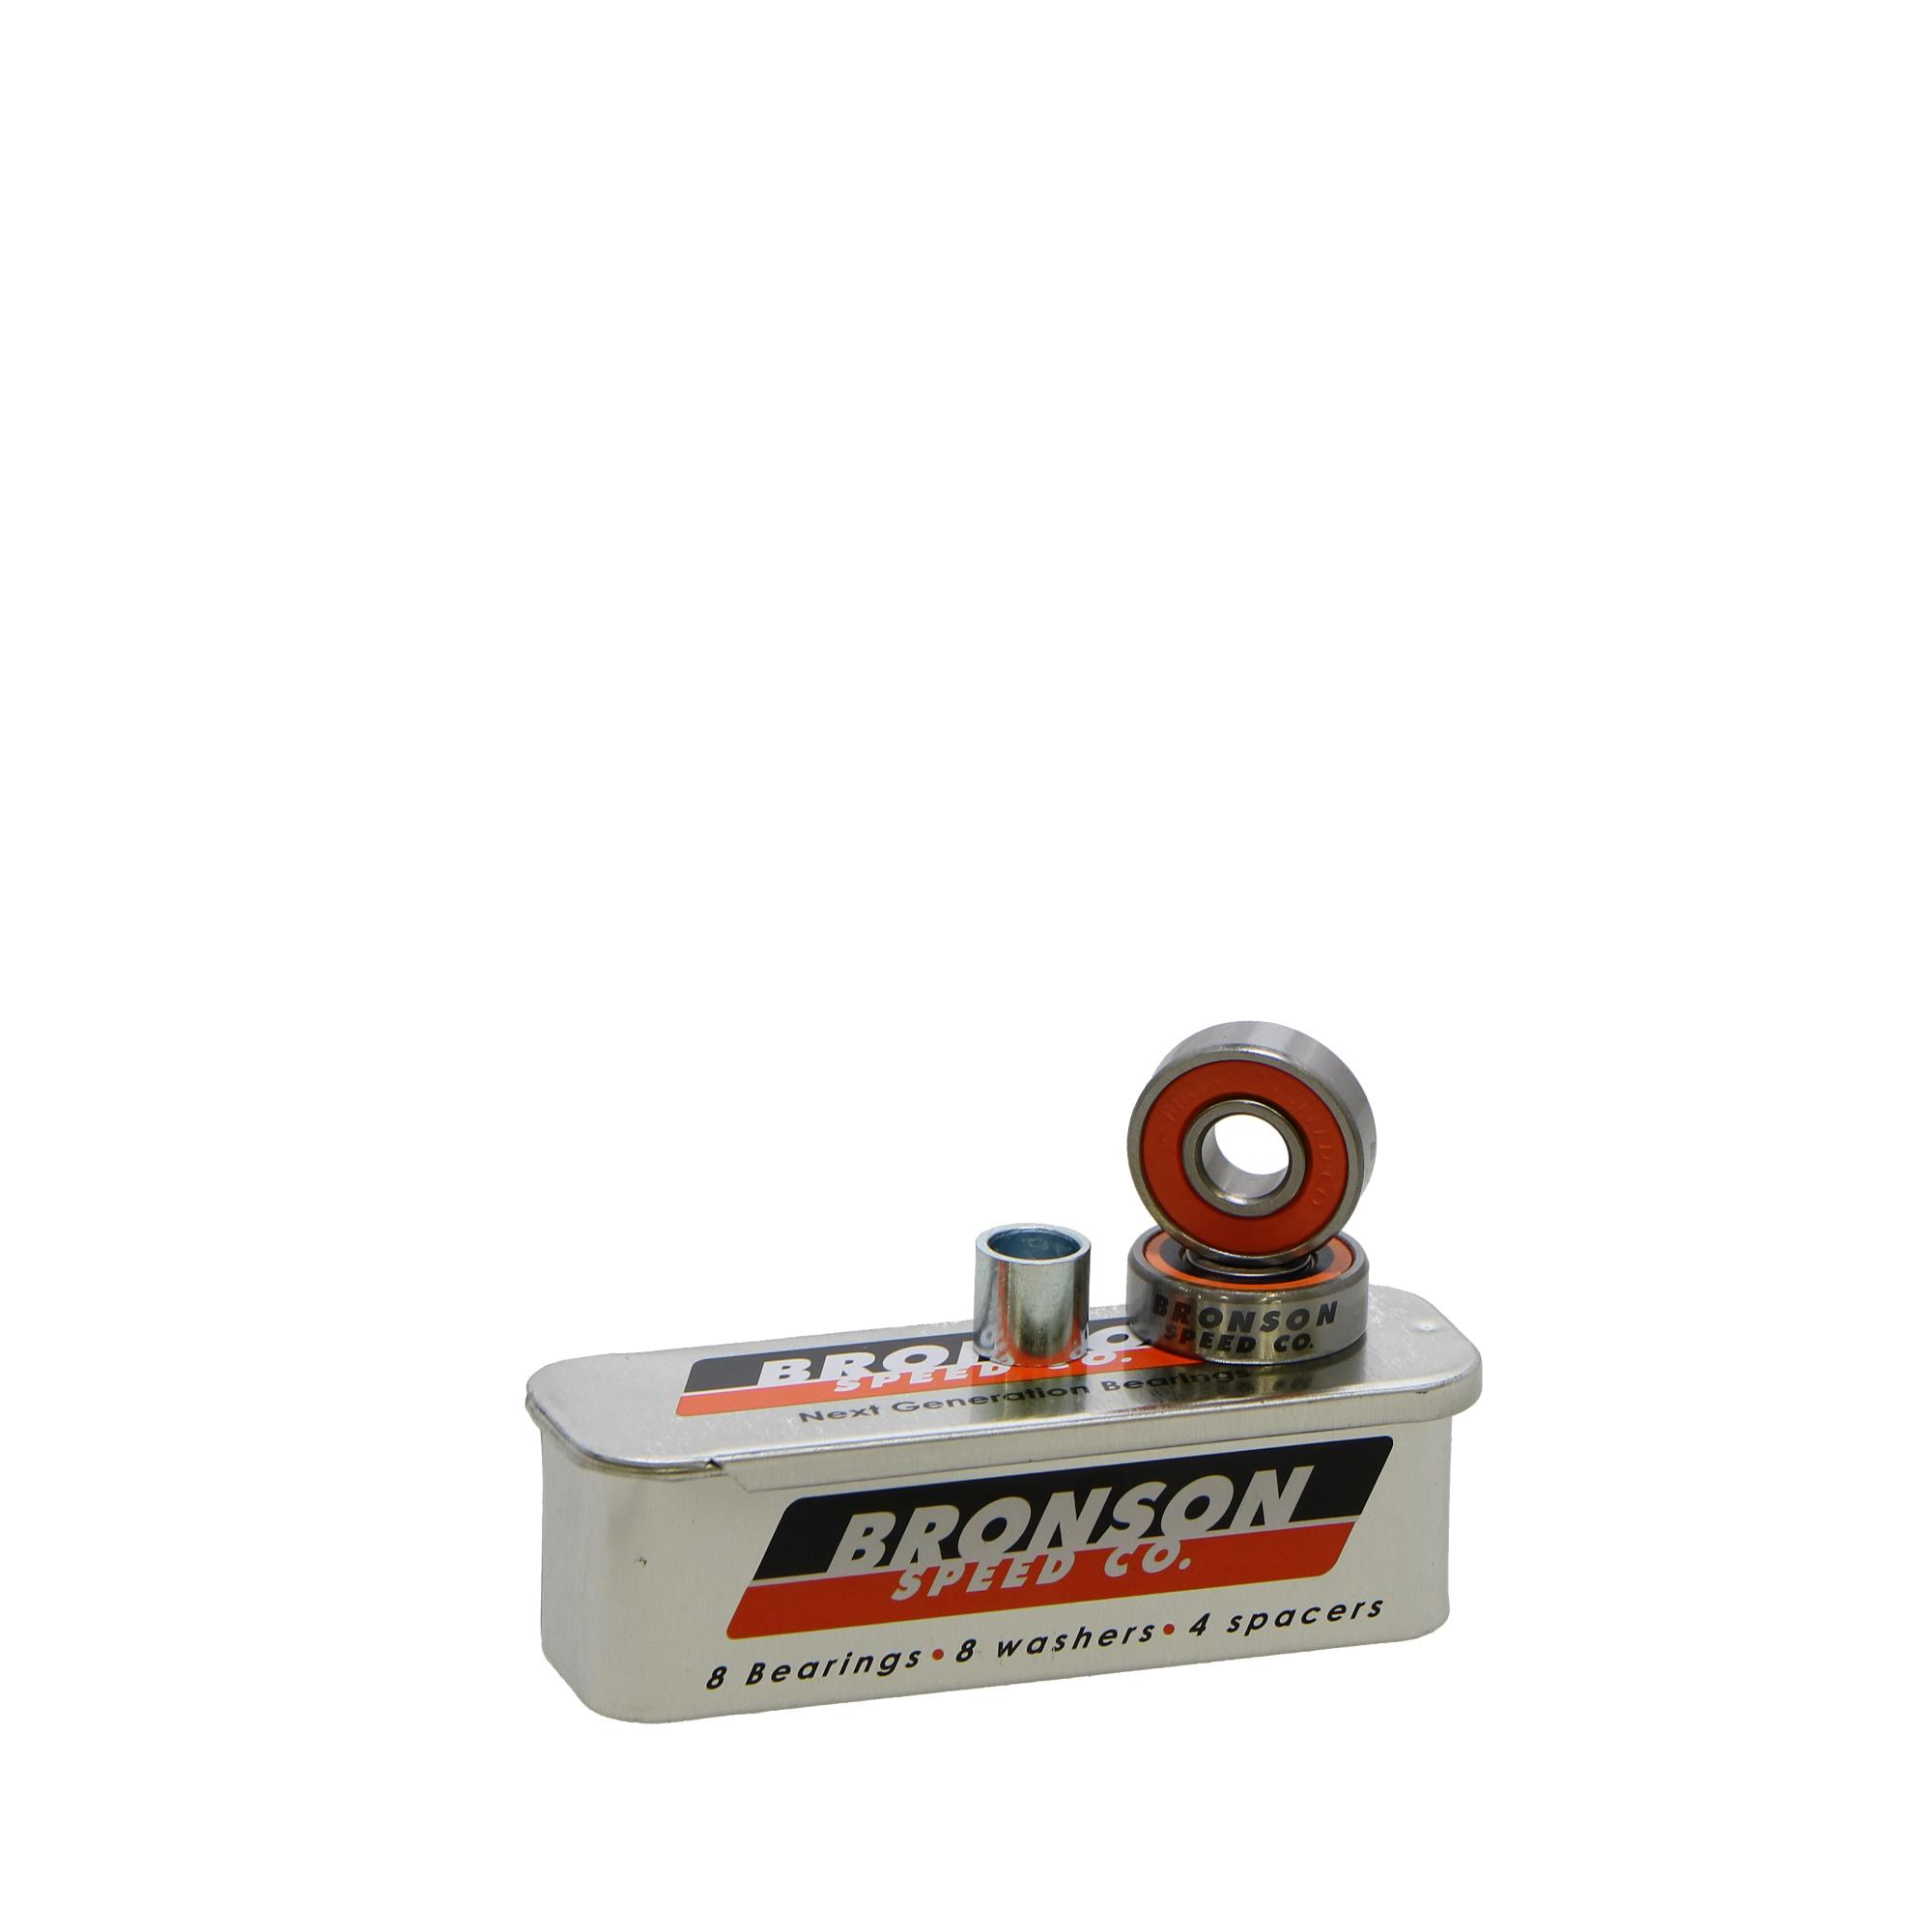 Bronson Bearing Speed Co G3 ASSORTED